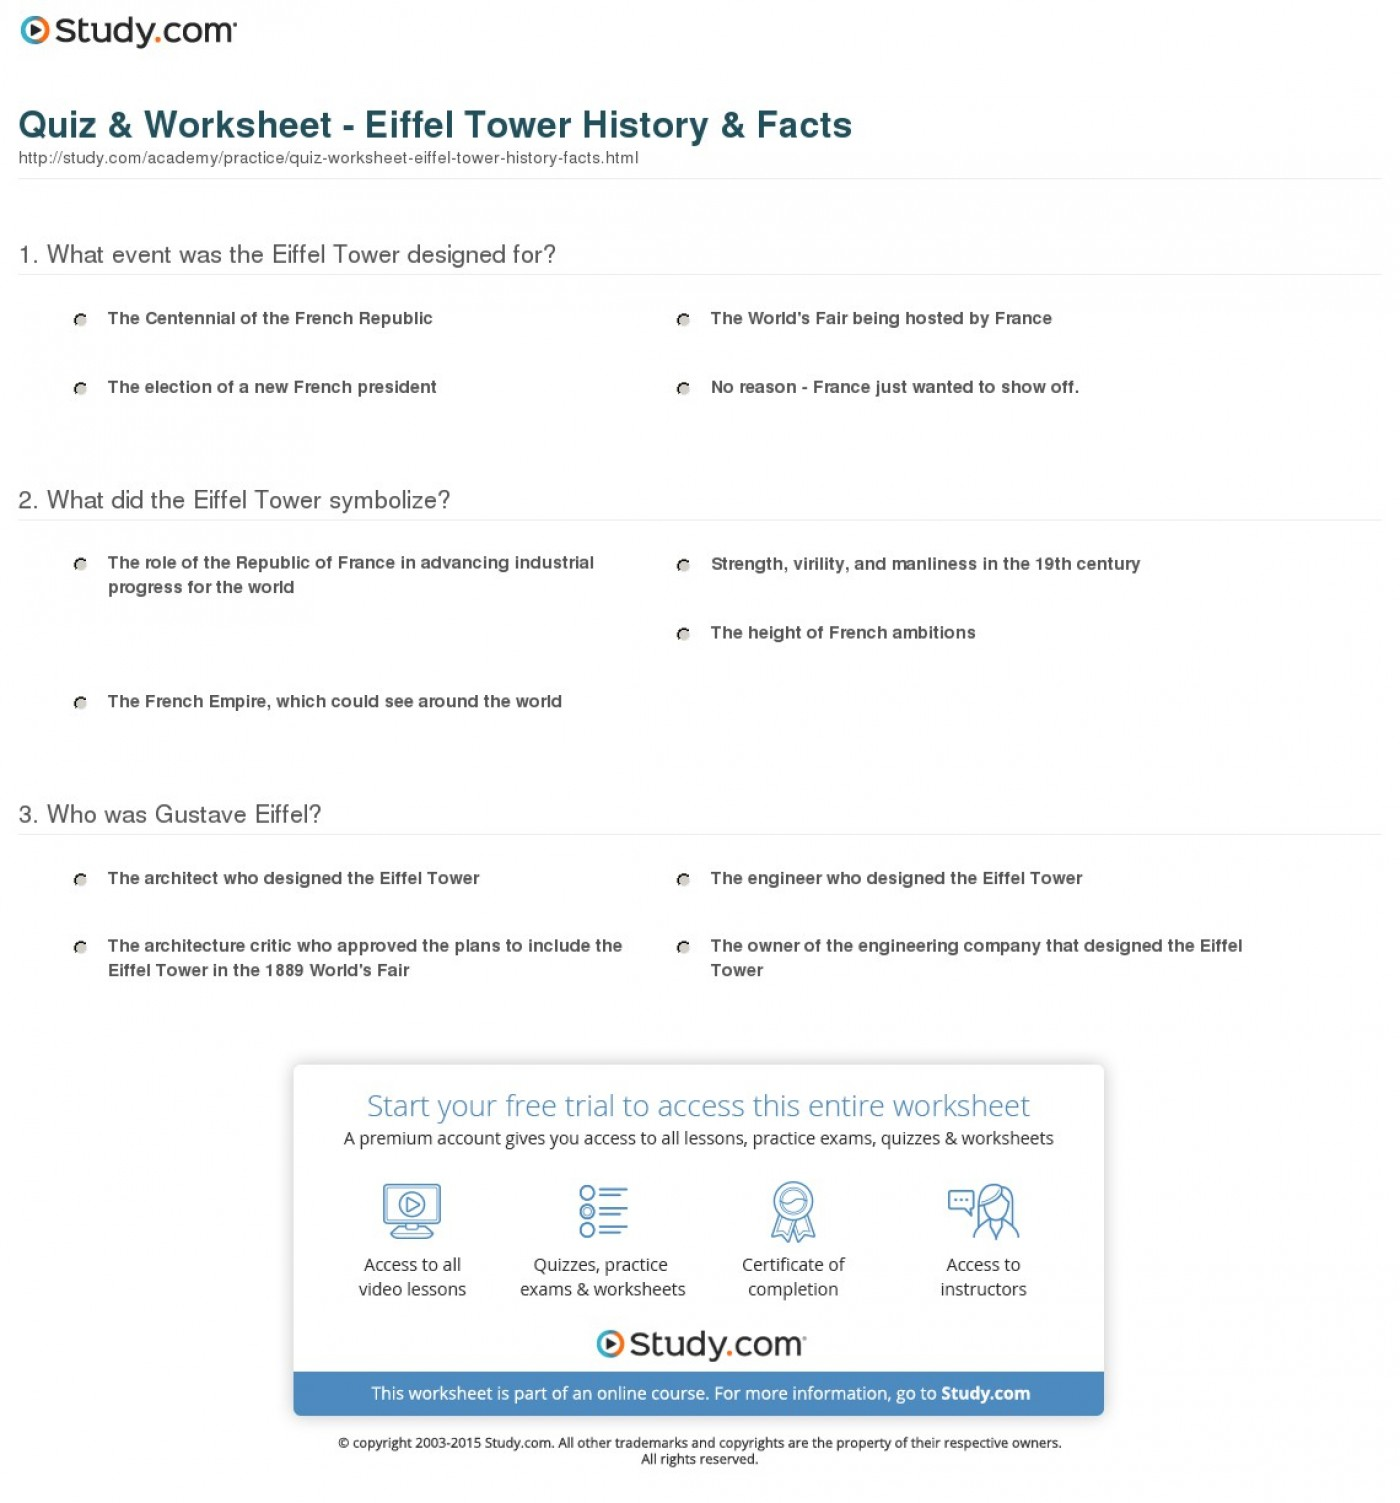 007 Quiz Worksheet Eiffel Tower History Facts Essay Example Exceptional Description 1400